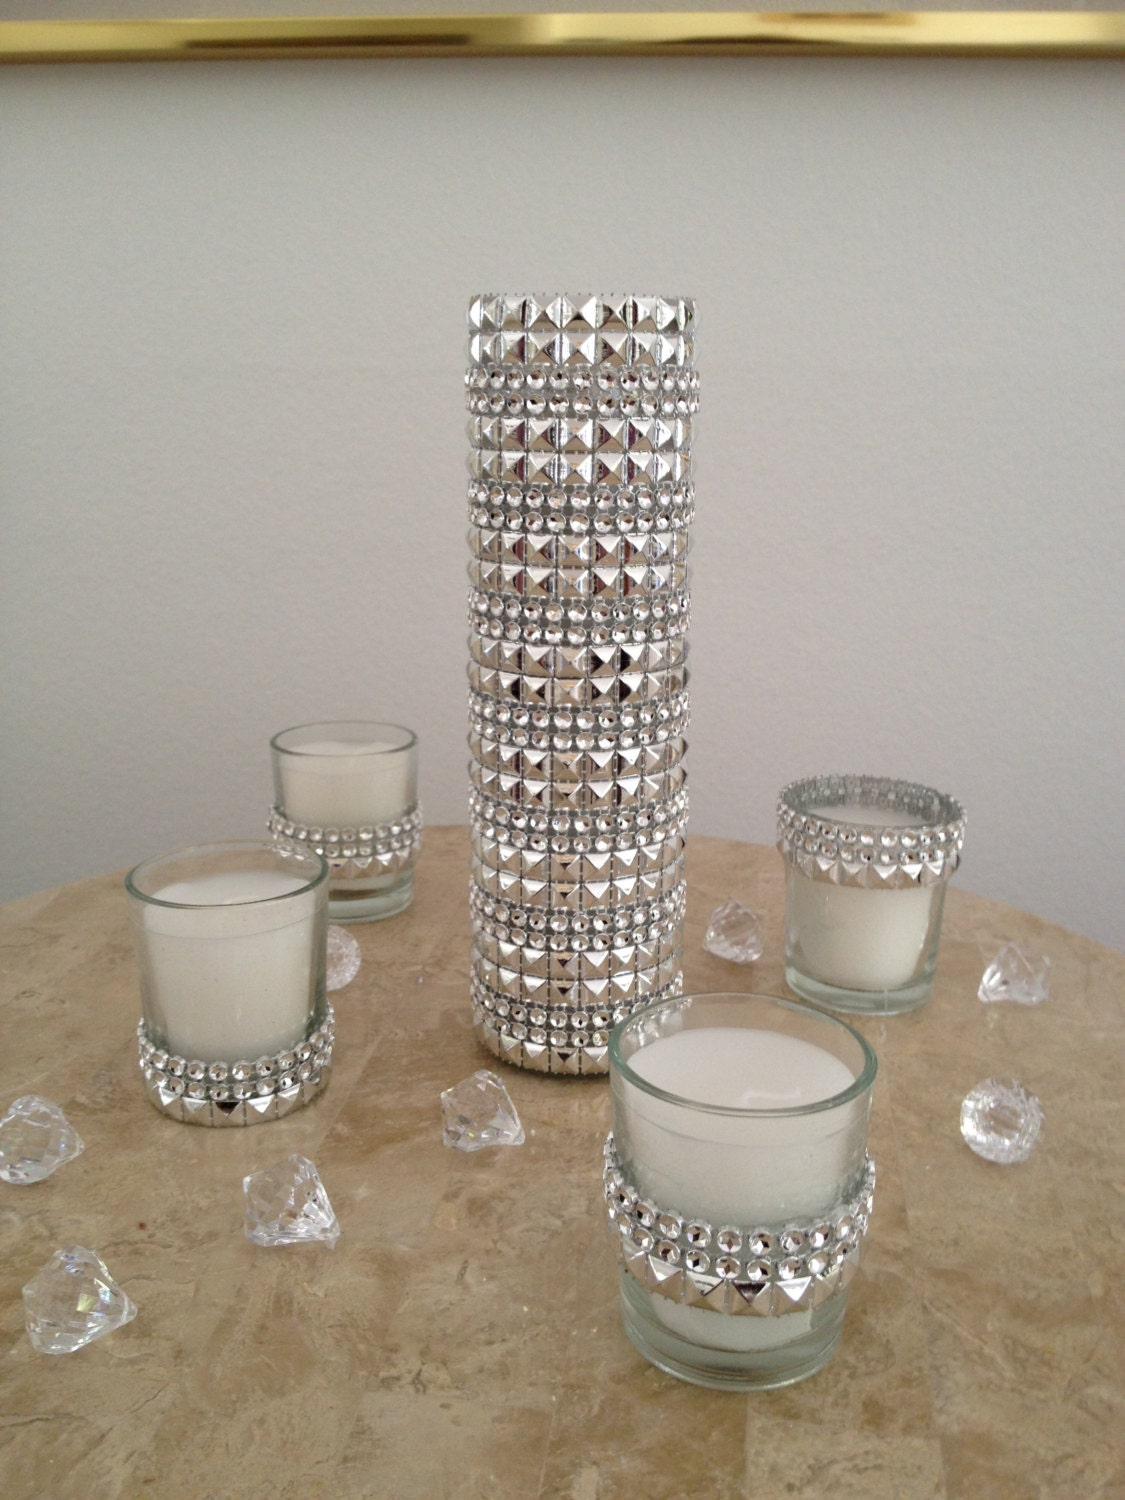 5 Piece Silver Rhinestone Bling Mesh Glass Candle by